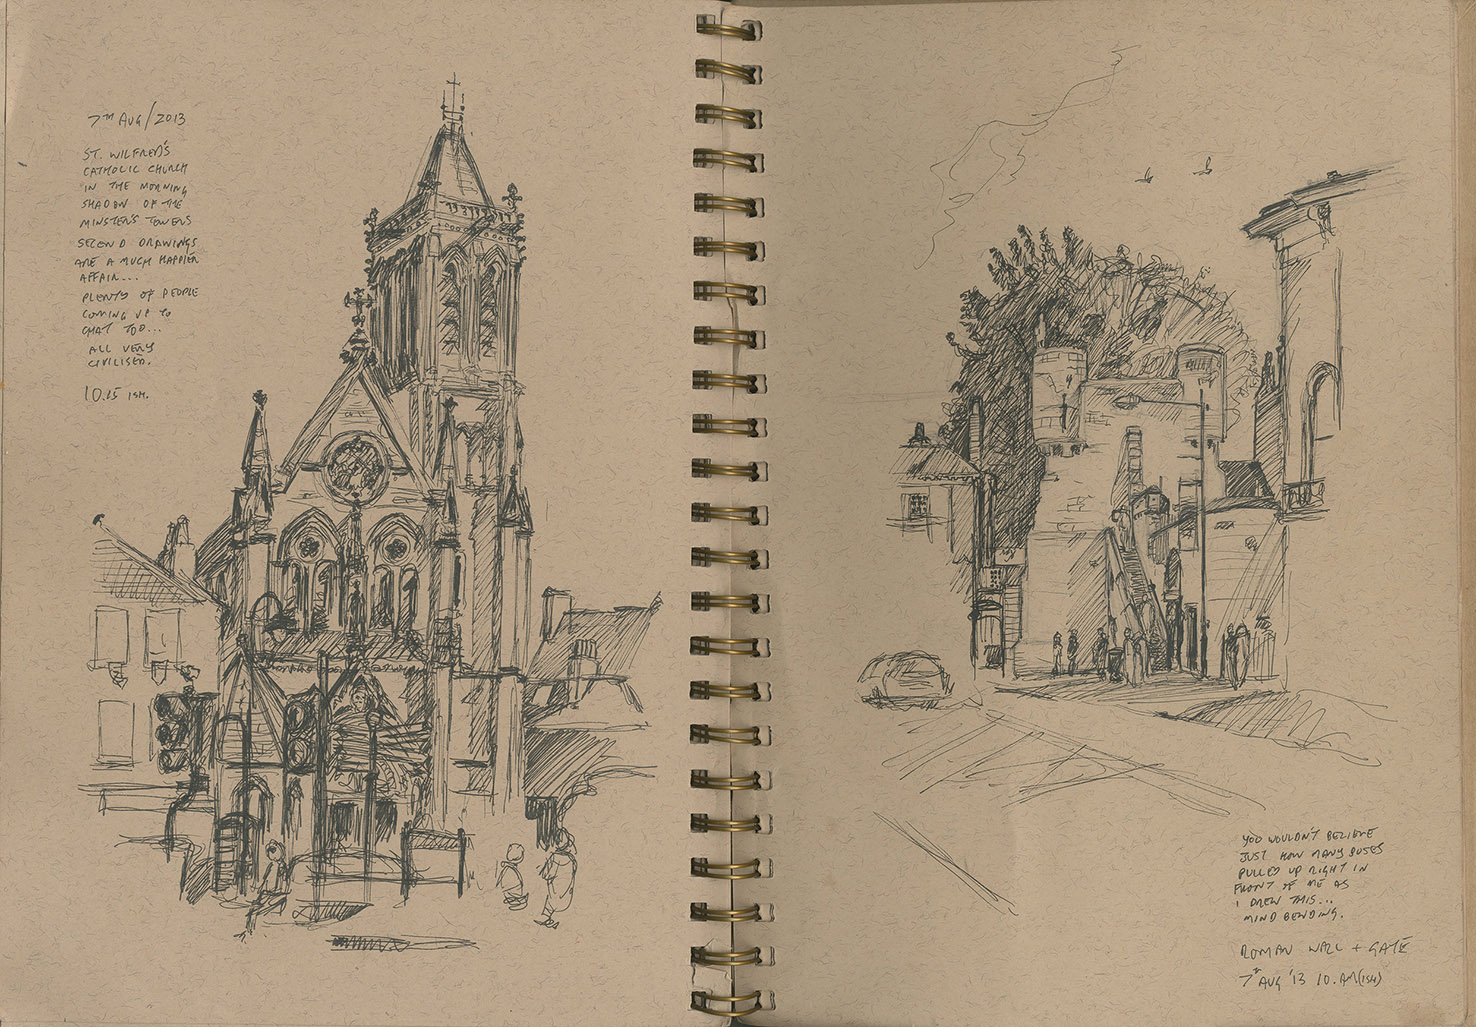 1476x1027 York Interlude And Other Recent Observational Drawing Urban